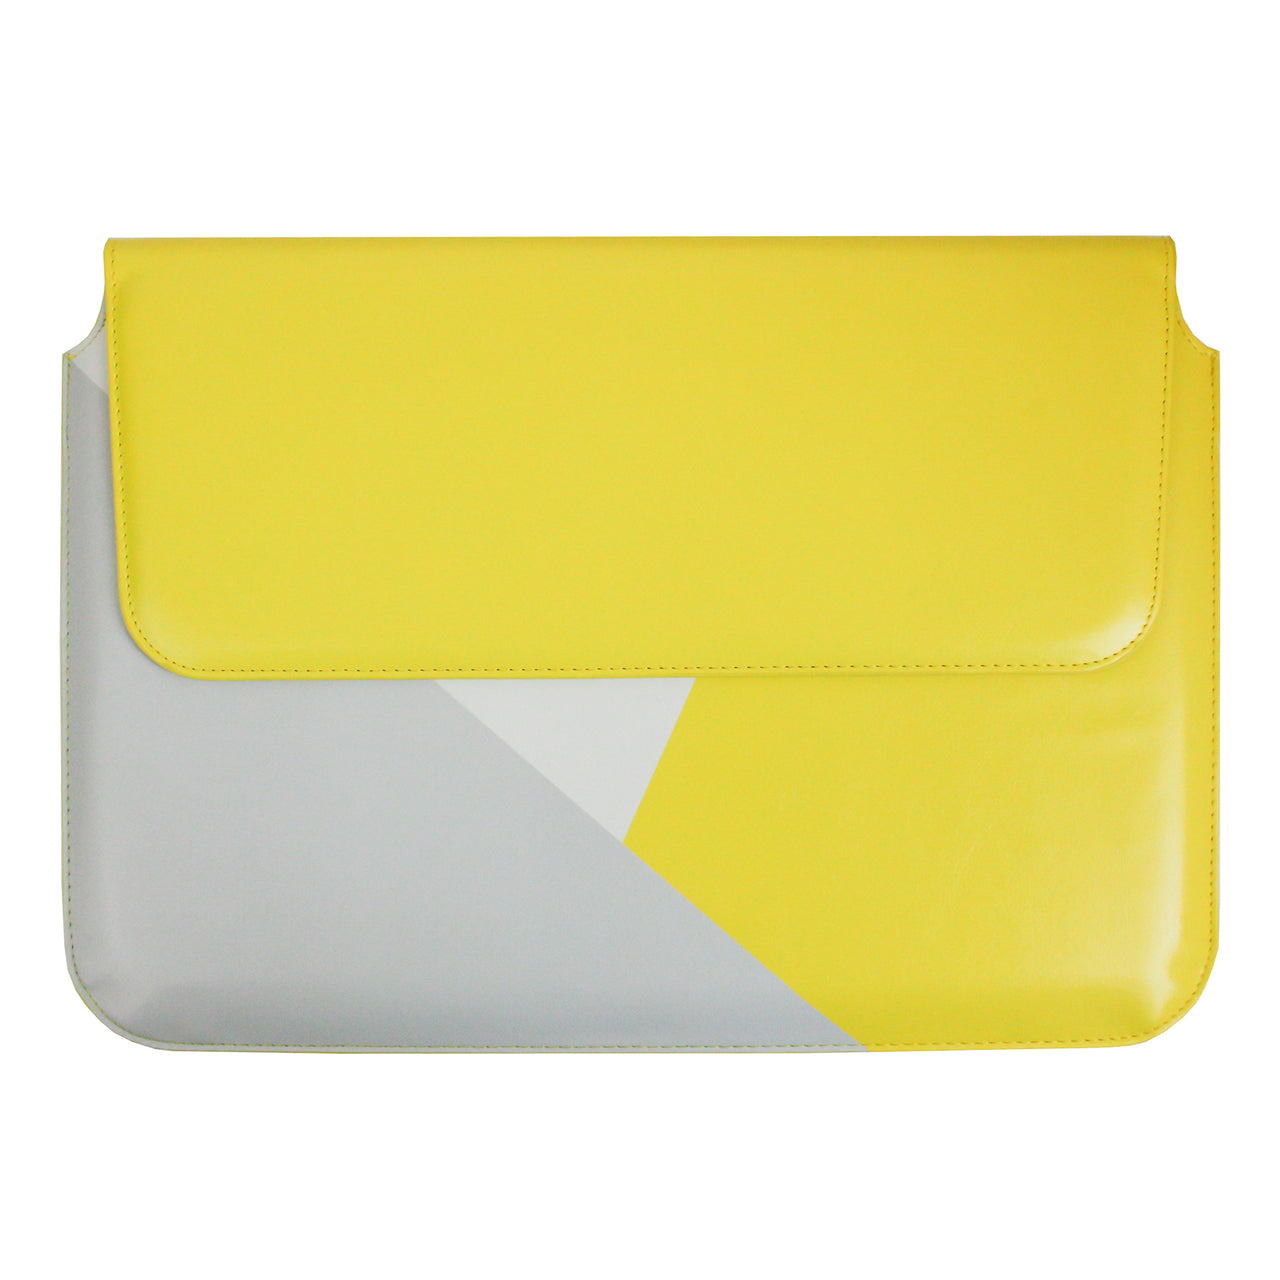 PU Leather Magnetic Folio - Yellow Grey